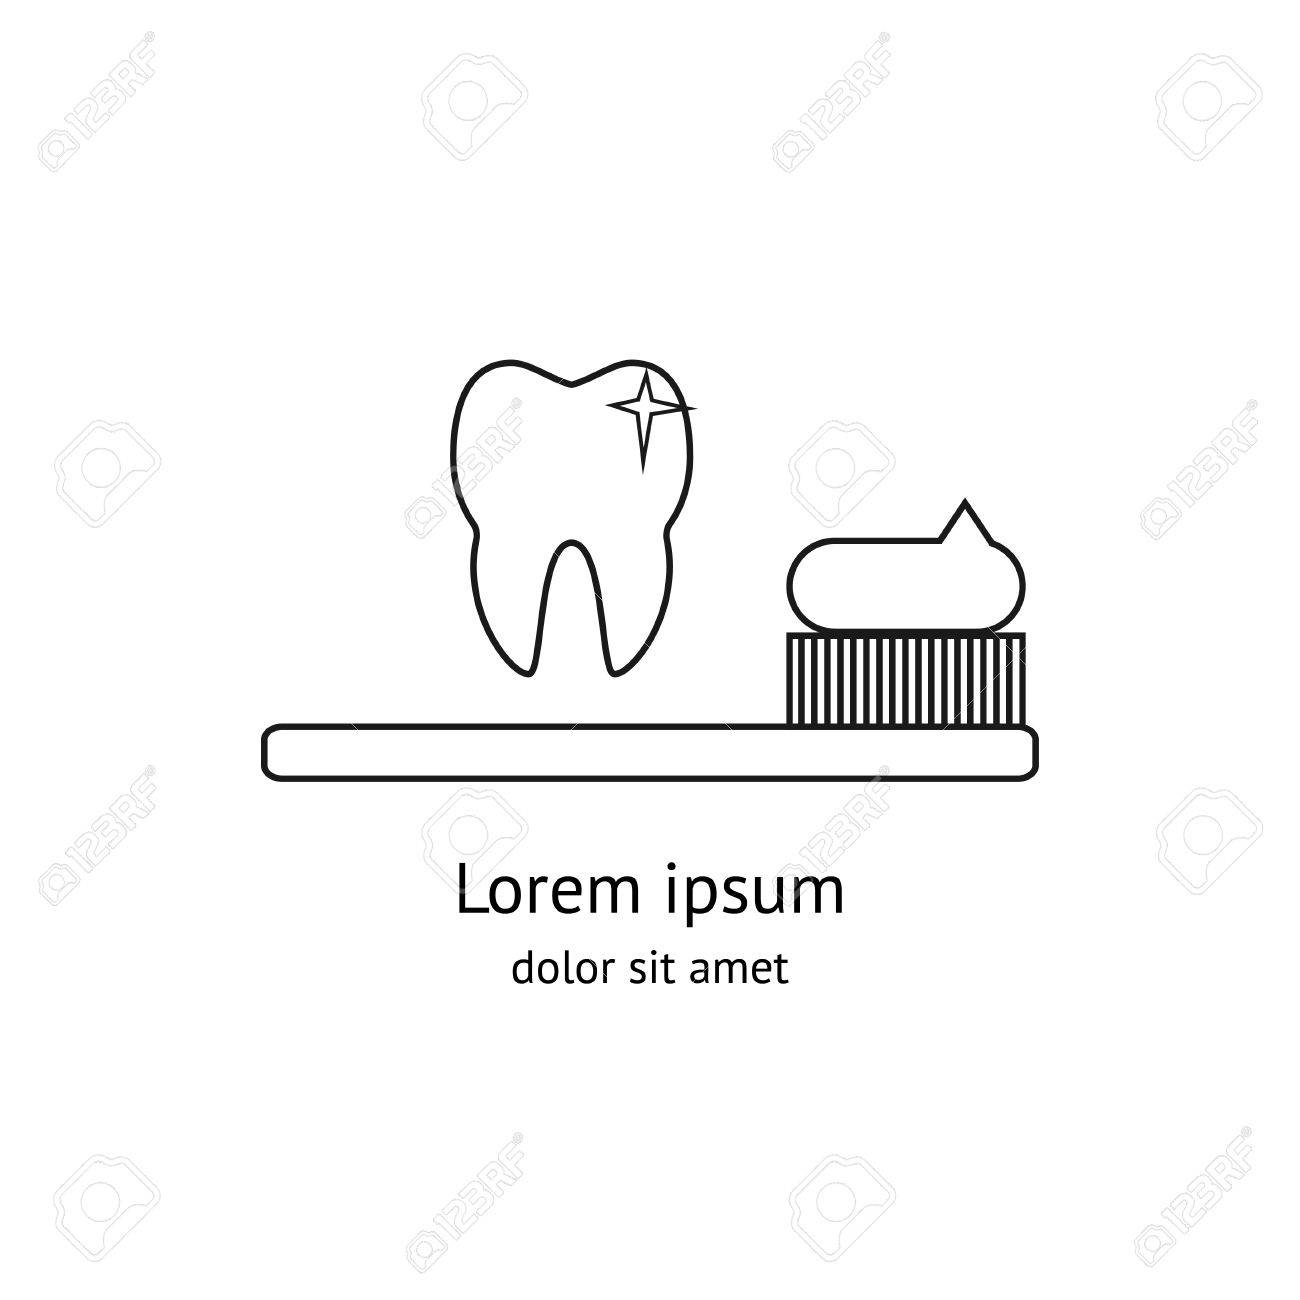 Tooth Dental And Toothbrush Design In Modern Outline Style